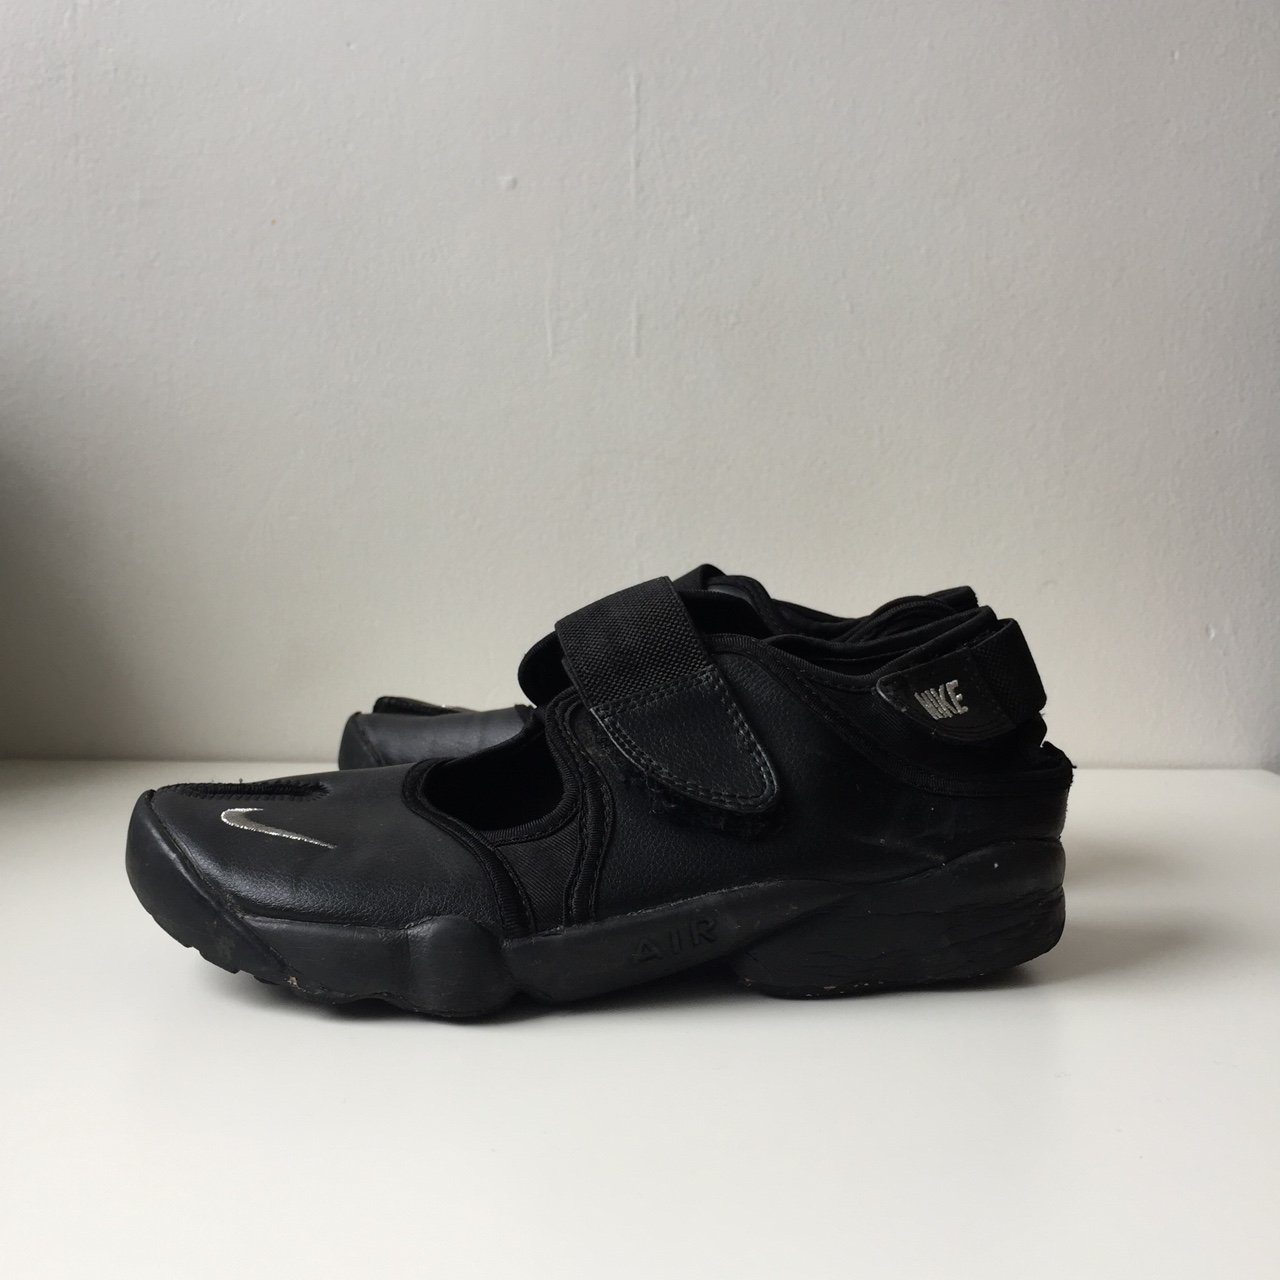 626496164973c4 Nike Air Rift Triple Black   Silver UK 6 £28 Vintage Air Max - Depop